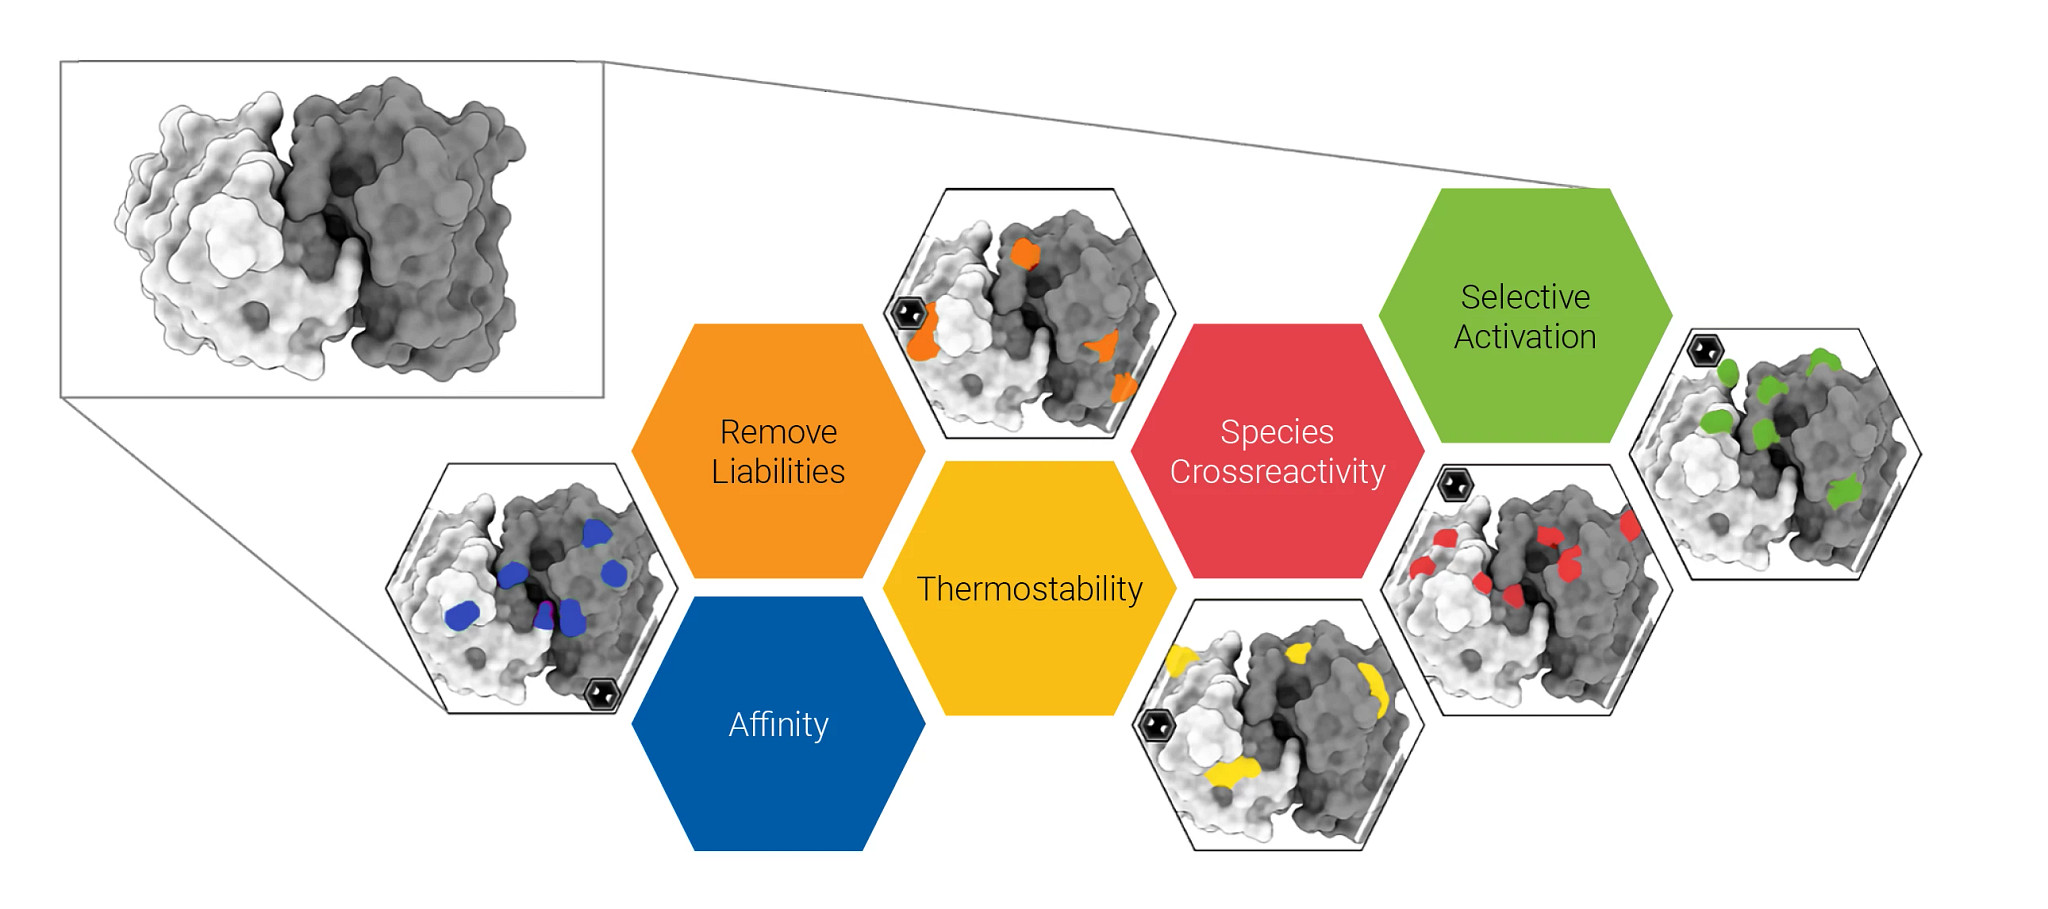 """Tumbler humanized antibody technology is a multi-factor optimization platform used to make antibodies""""more human,"""" and the resulting antibody is optimized for affinity, removal of liabilities, thermostability, species cross-reactivity, and selective activation."""